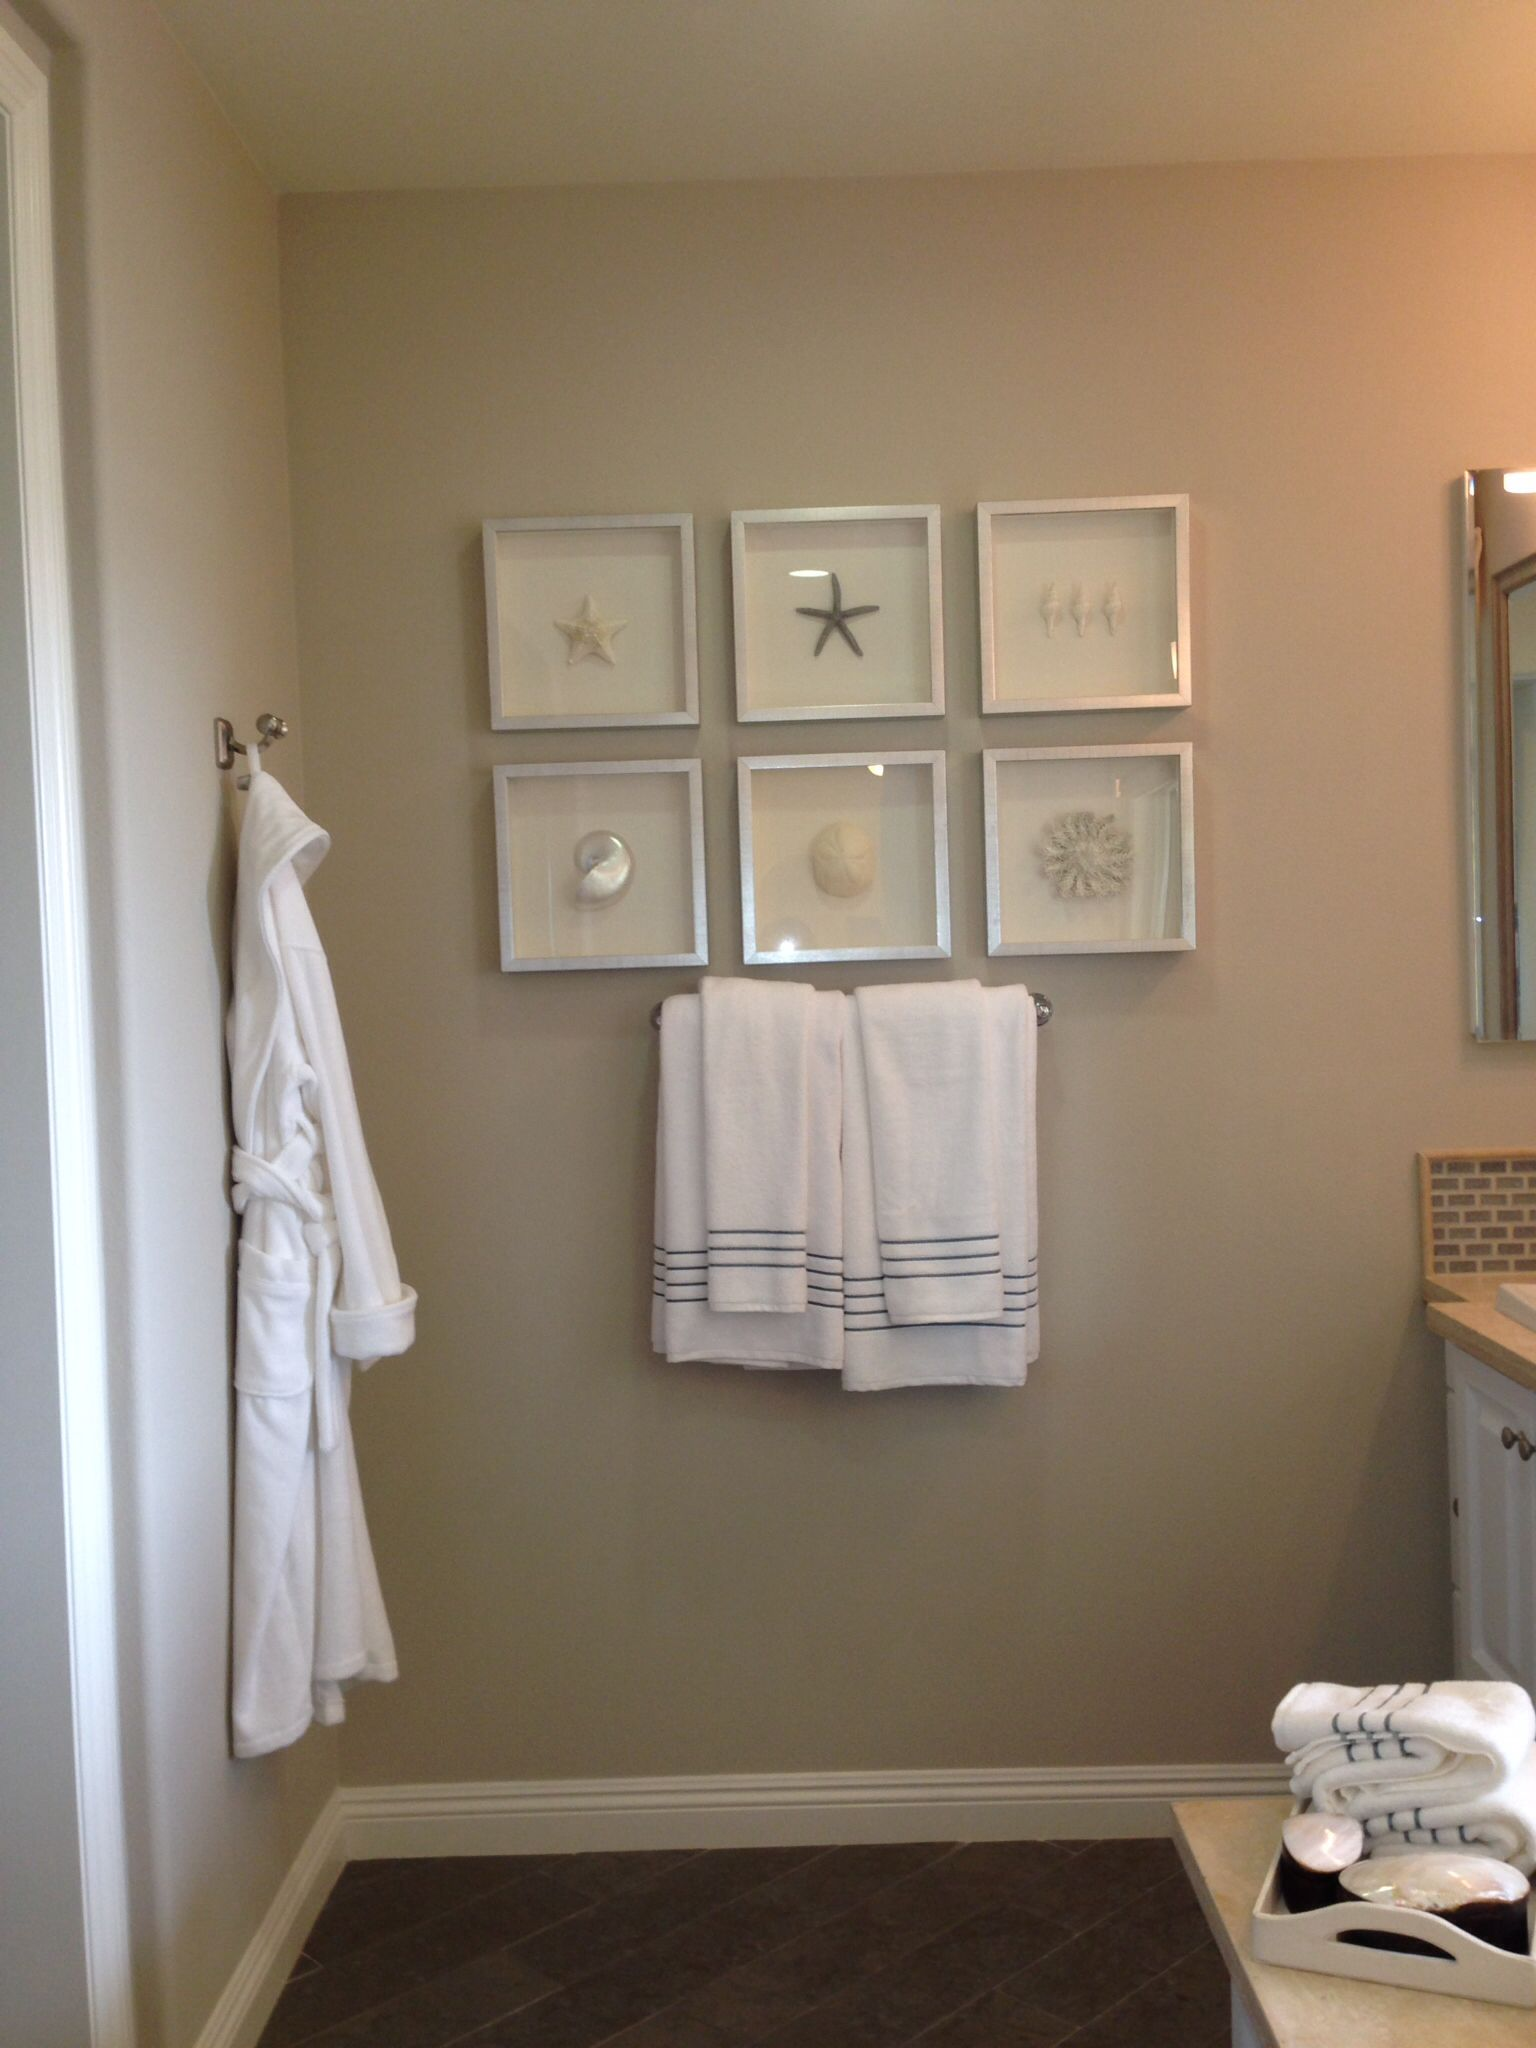 Bathroom beach decor framing ideas model home for Florida bathroom ideas